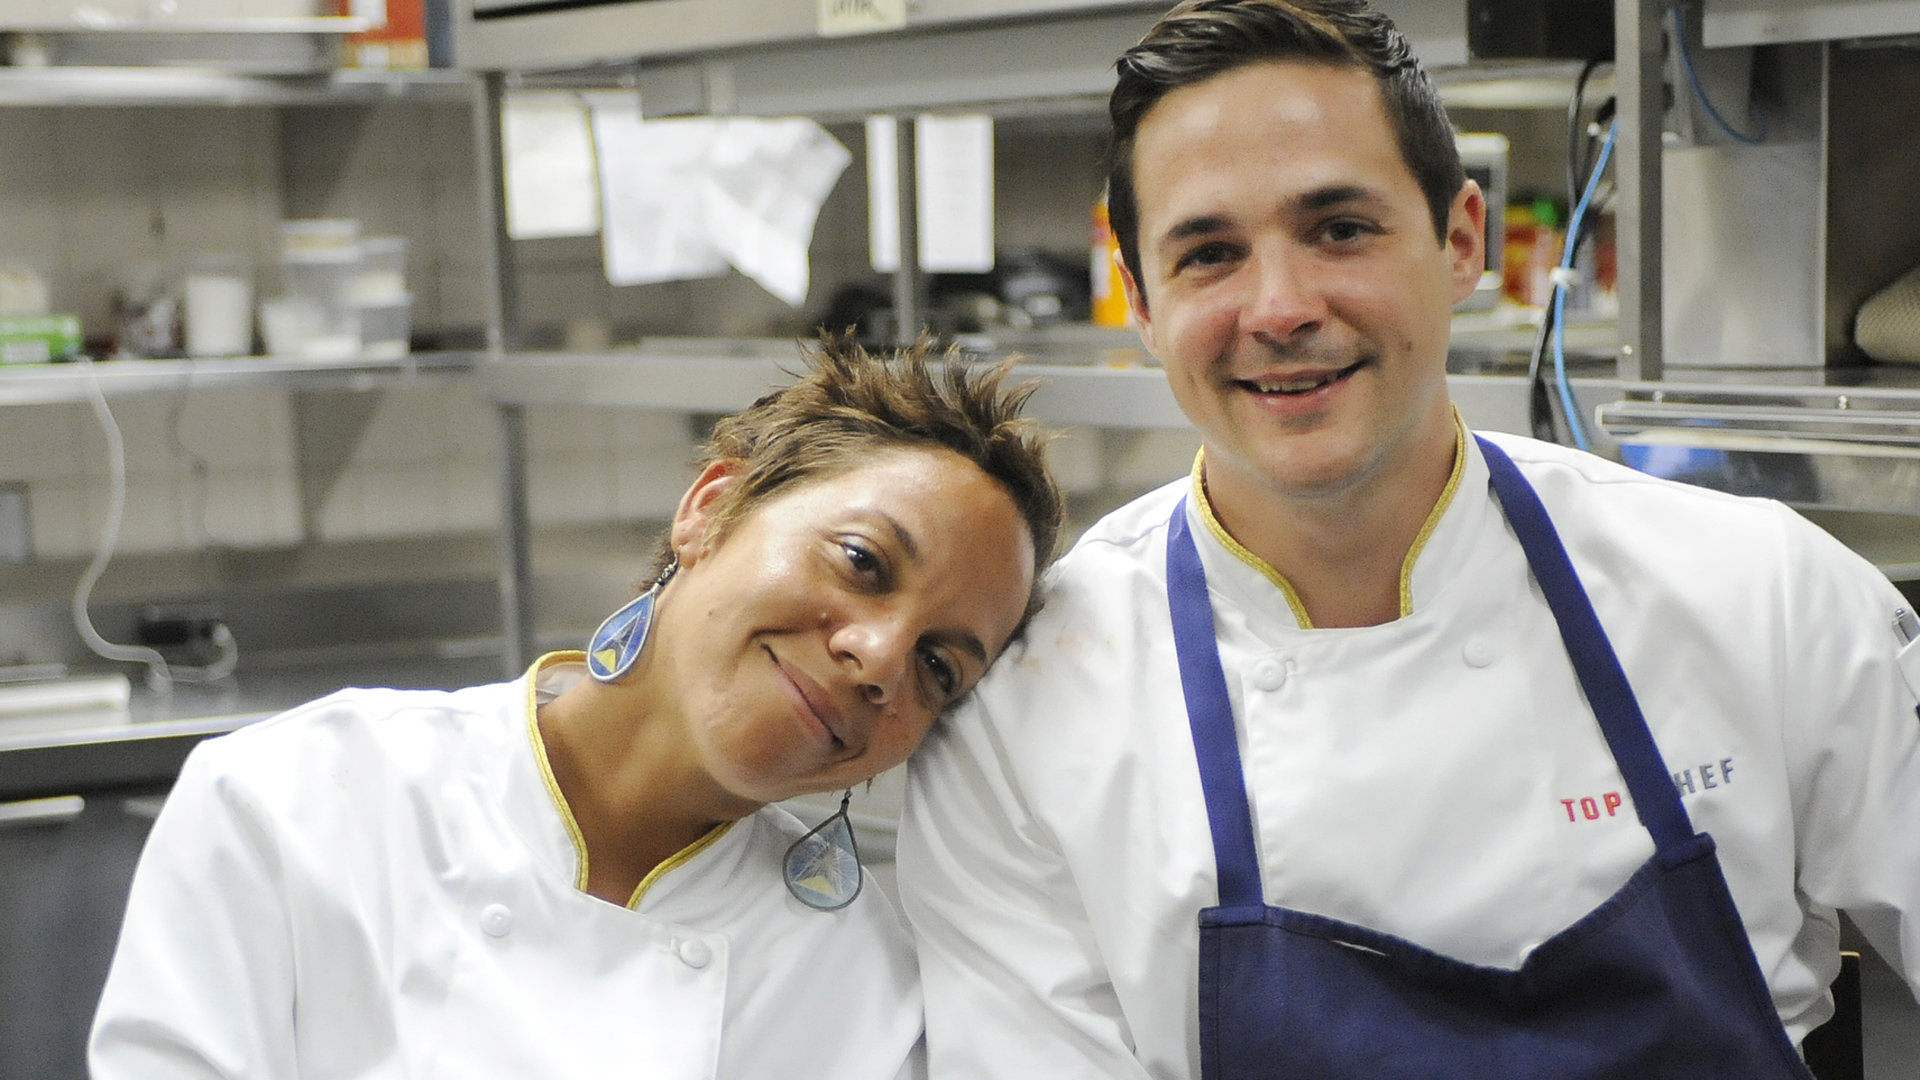 Top Chef Masters Bravo TV Official Site Top chef photo gallery